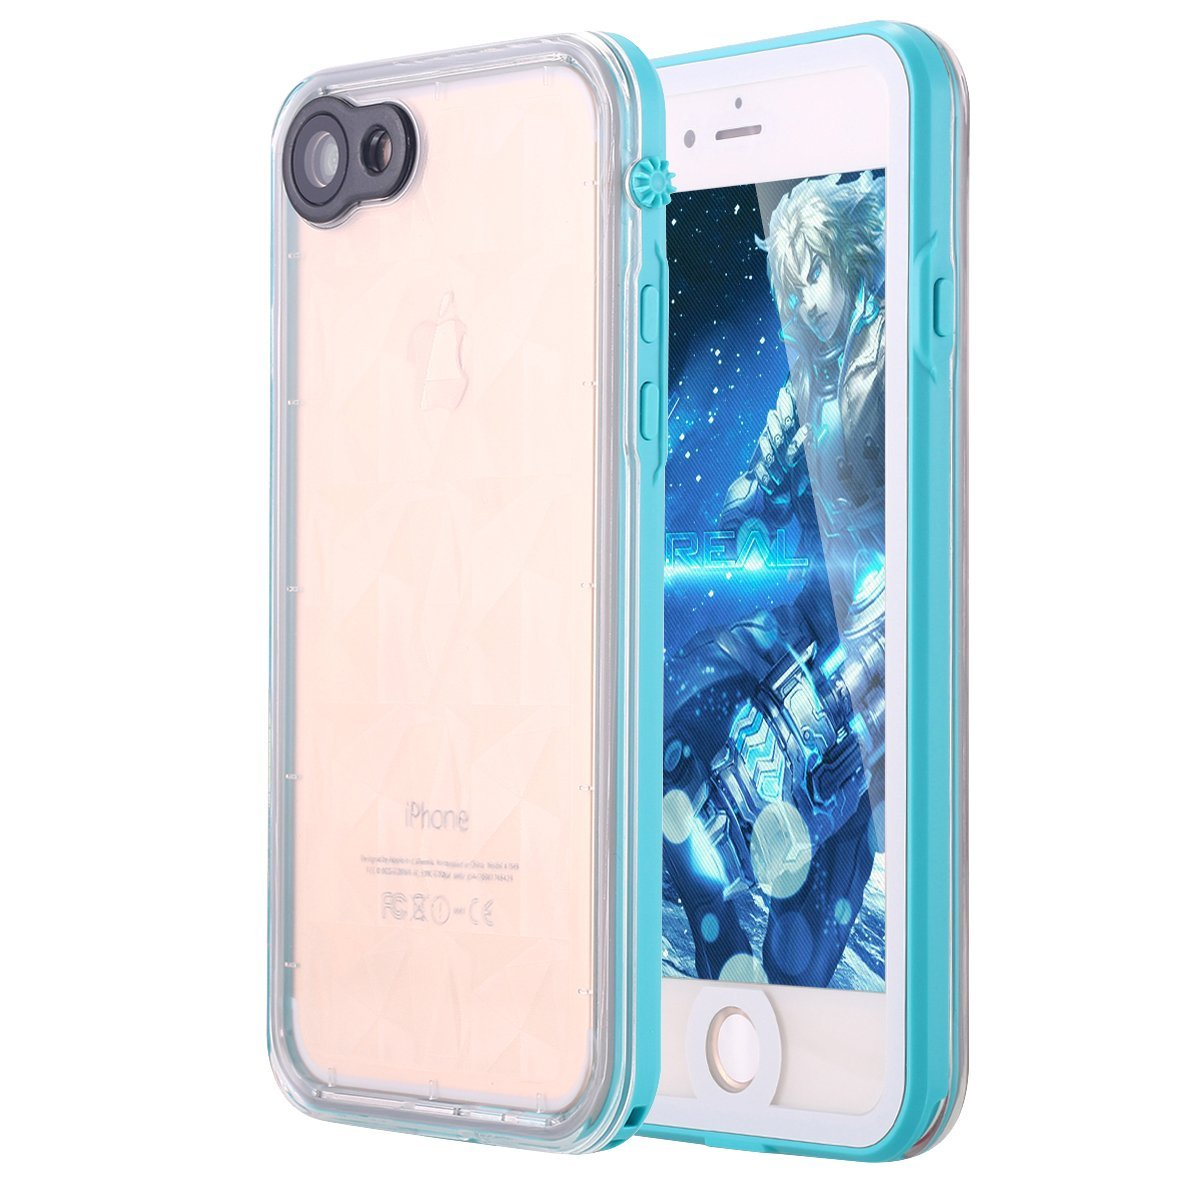 iPhone 8 Case,iPhone 7 Case, LONTECT Slim Thin iPhone 8/iPhone 7 Waterproof Shockproof Dirtproof Snowproof Case with Clear Back Cover for Apple iPhone 8/iPhone 7 - Teal